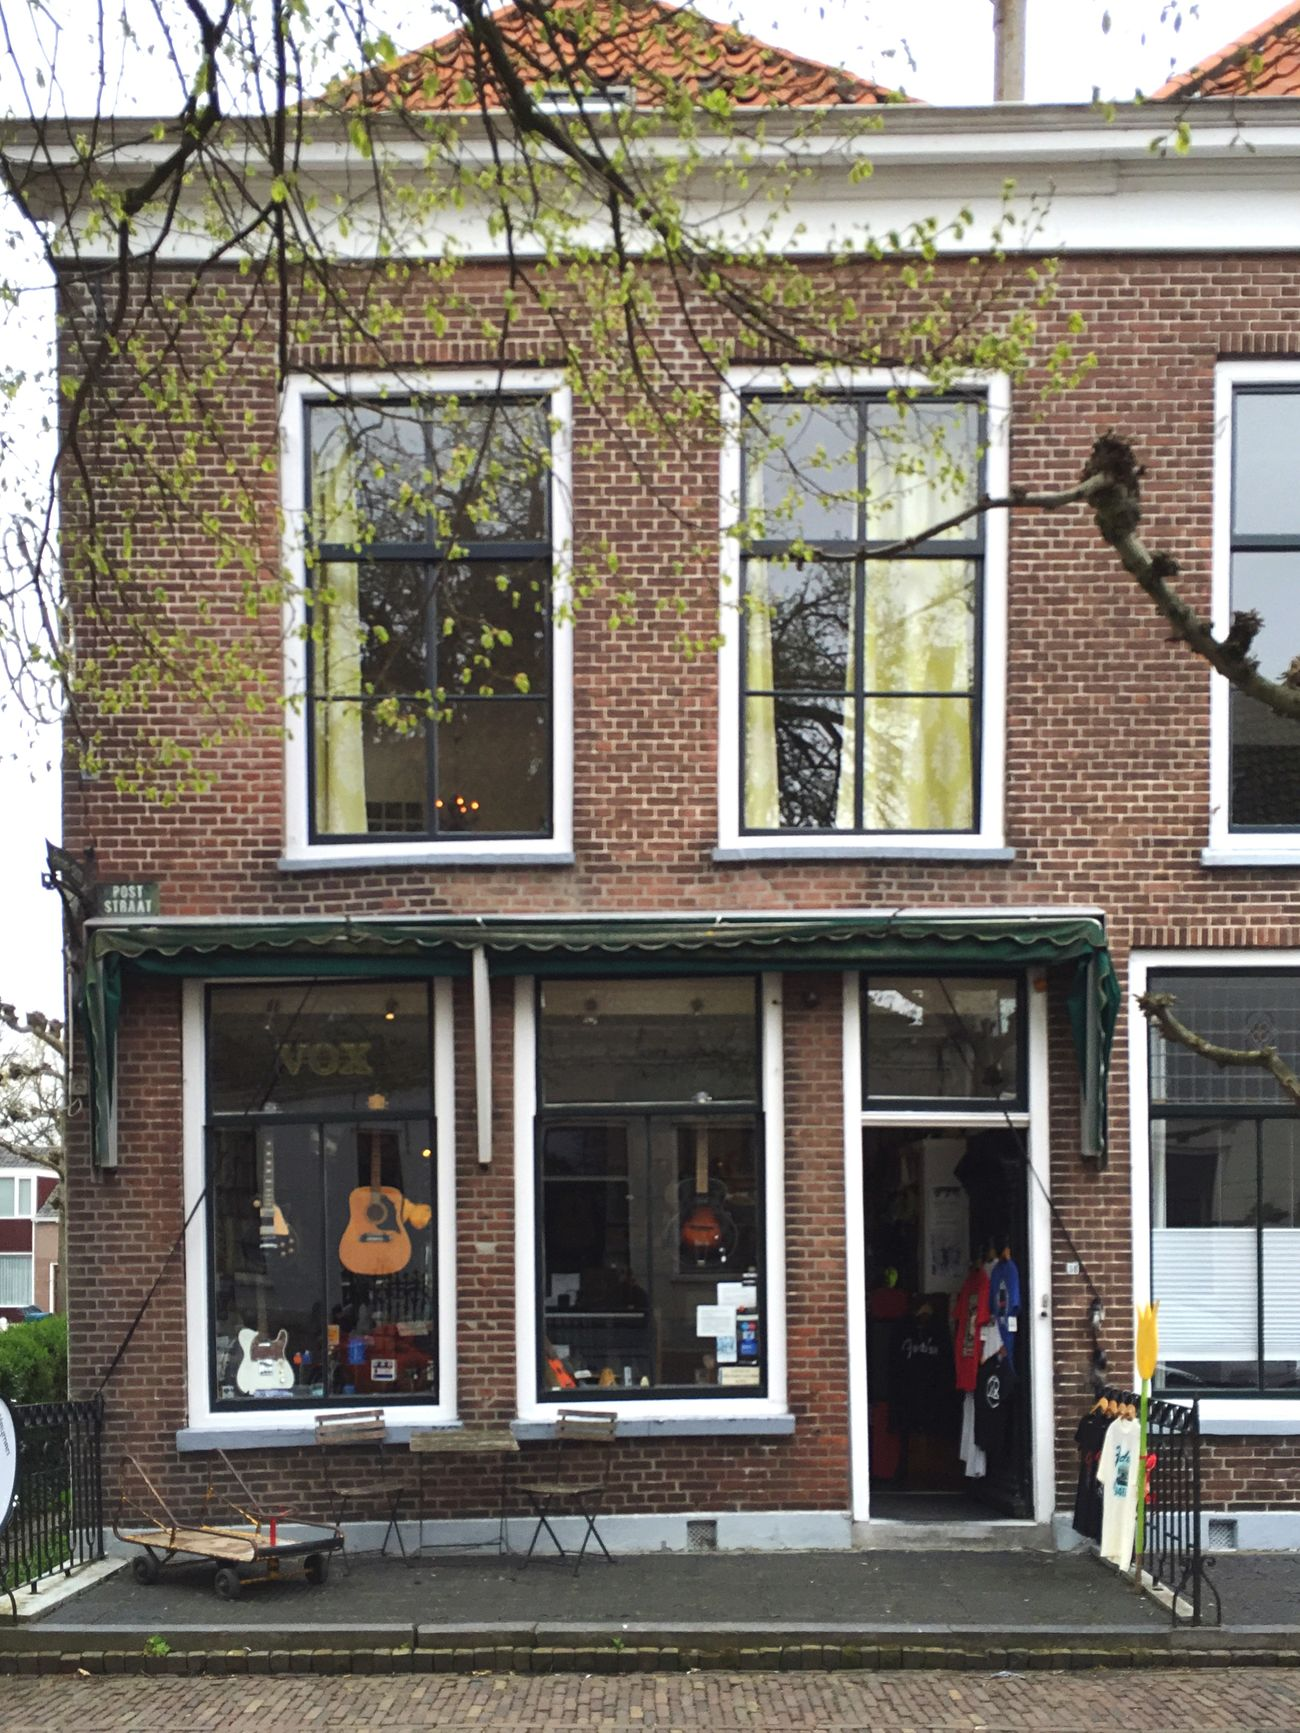 Guitar Store Guitars Guitarcenter Zierikzee The Netherlands